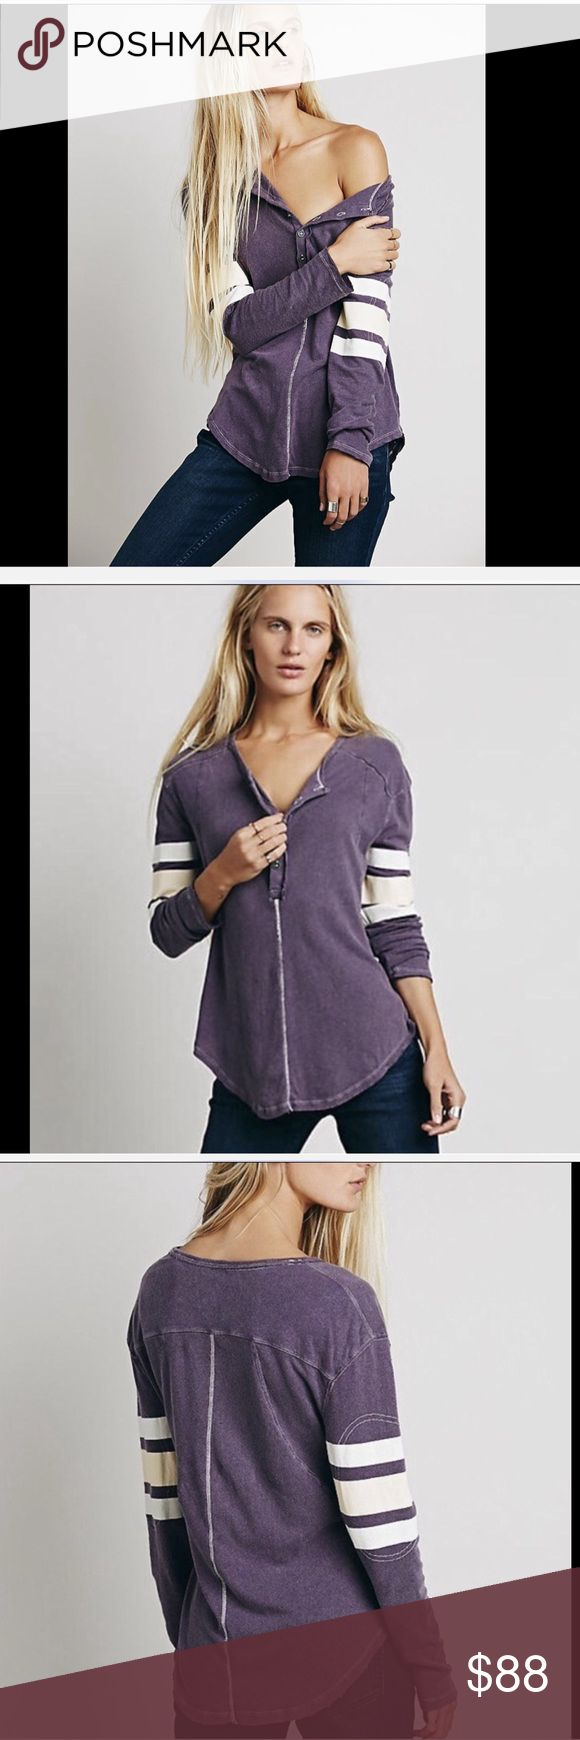 """Free People  purple Game Time Henley Top M Free People We The Free purple Game Time Henley Top """"Lived In"""" relaxed fit cotton linen blend henley top ivory, tan triple stripes on long sleeves raw trim and hem New Without Tags  *  Size:  Medium  53% linen * 47% cotton hand wash cold  measures:  46"""" around bust 26"""" long in front middle 28"""" long in back middle Free People Tops Sweatshirts & Hoodies"""